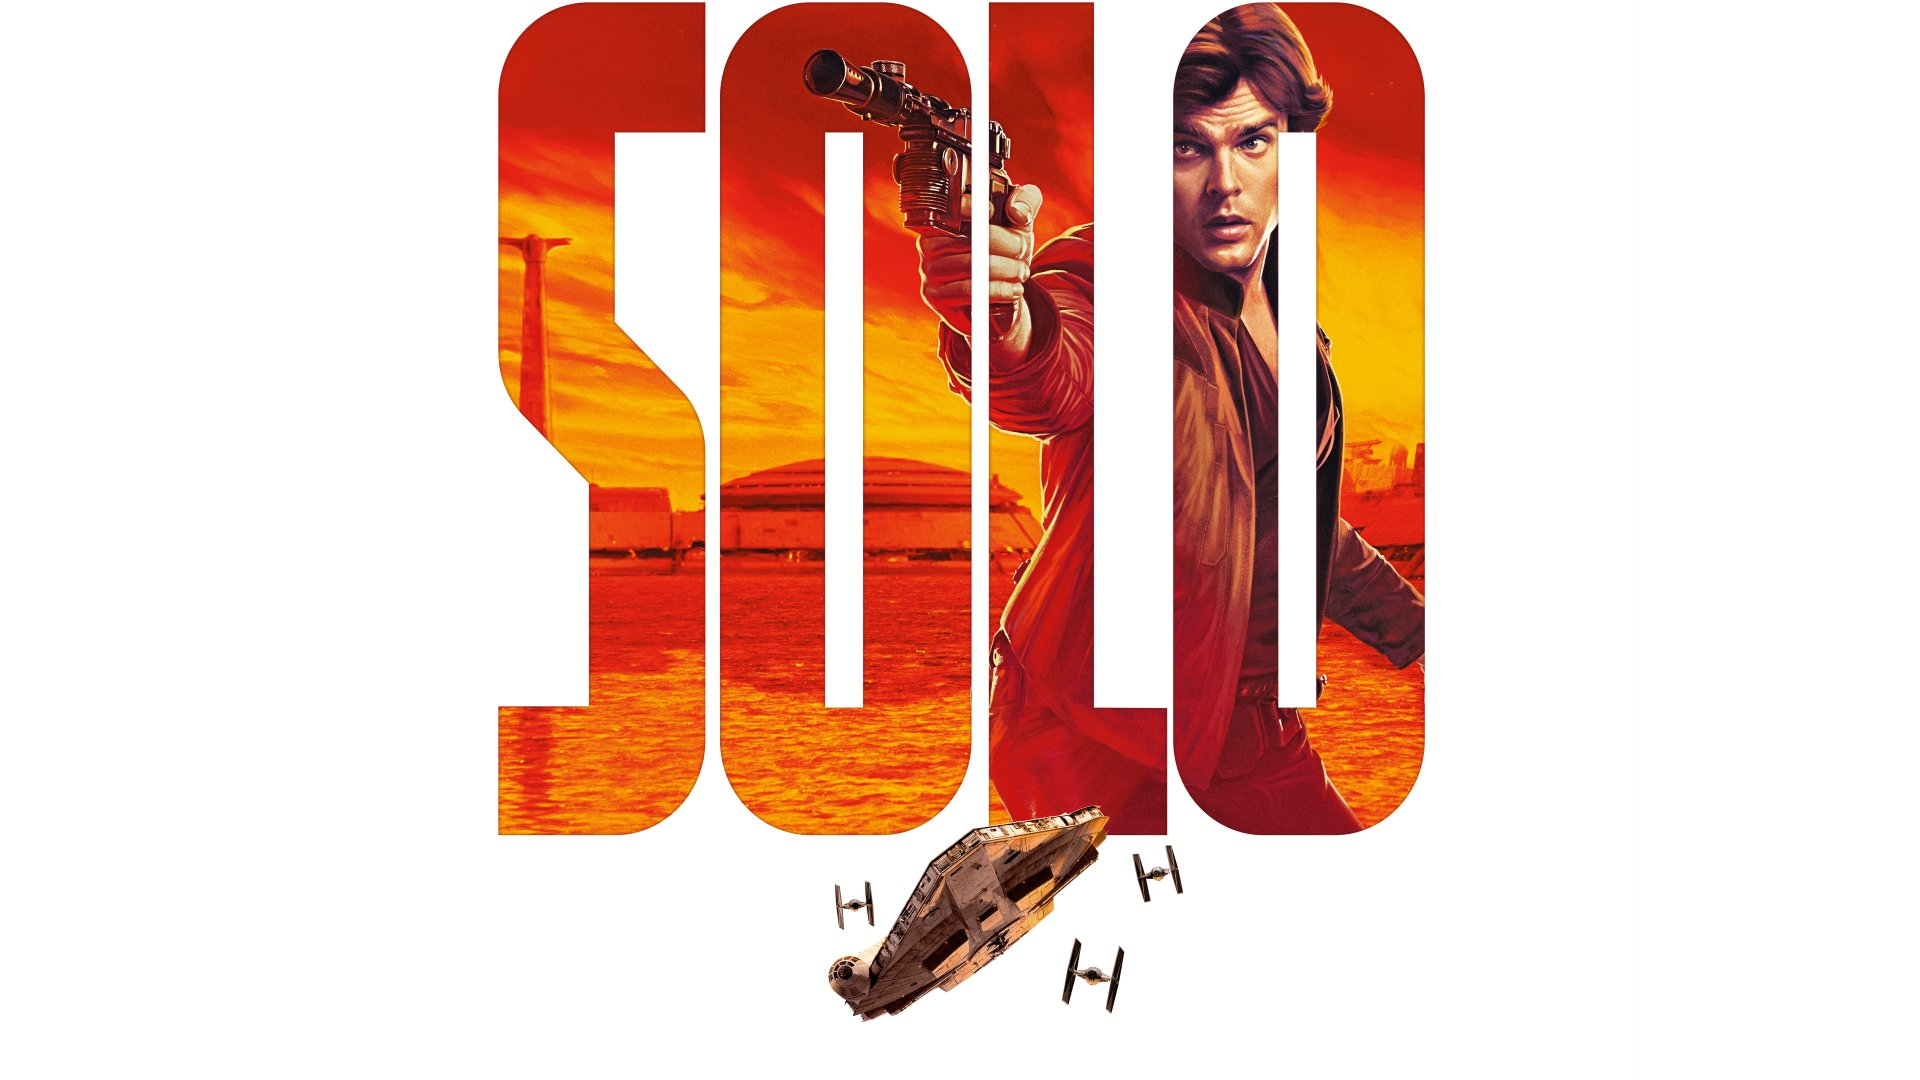 Movie - Solo: A Star Wars Story  Han Solo Star Wars Alden Ehrenreich Wallpaper